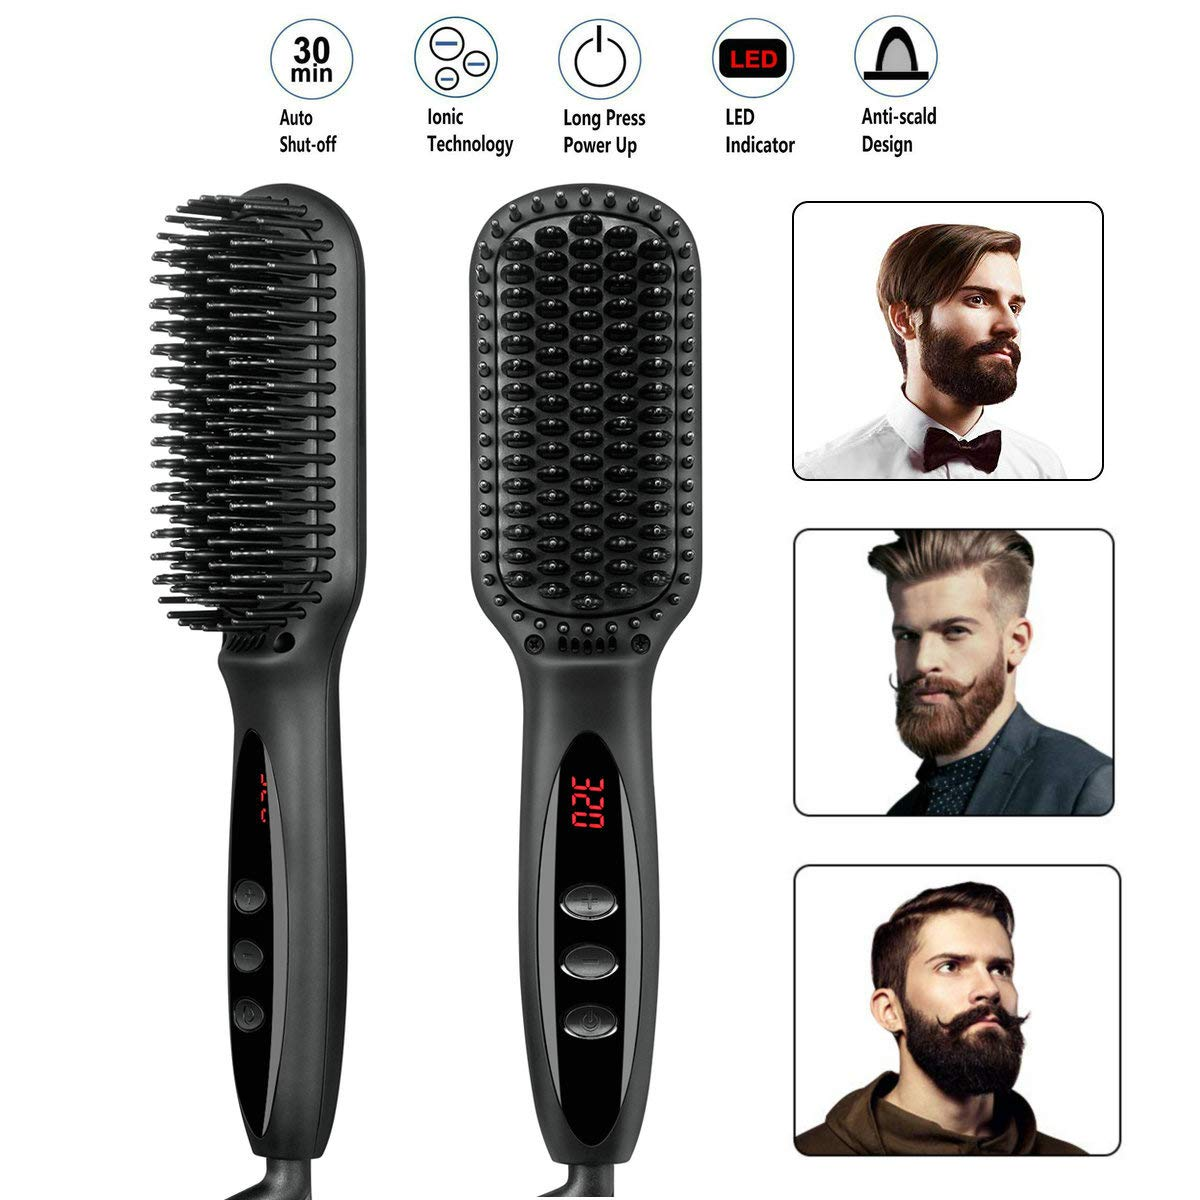 Beard Straightener Brush for Men Premium Hair Straightening Brush and Beard Comb Ionic Quick Hair Styling Comb for Men and Women Electric Heat Brush for Home and Travel black